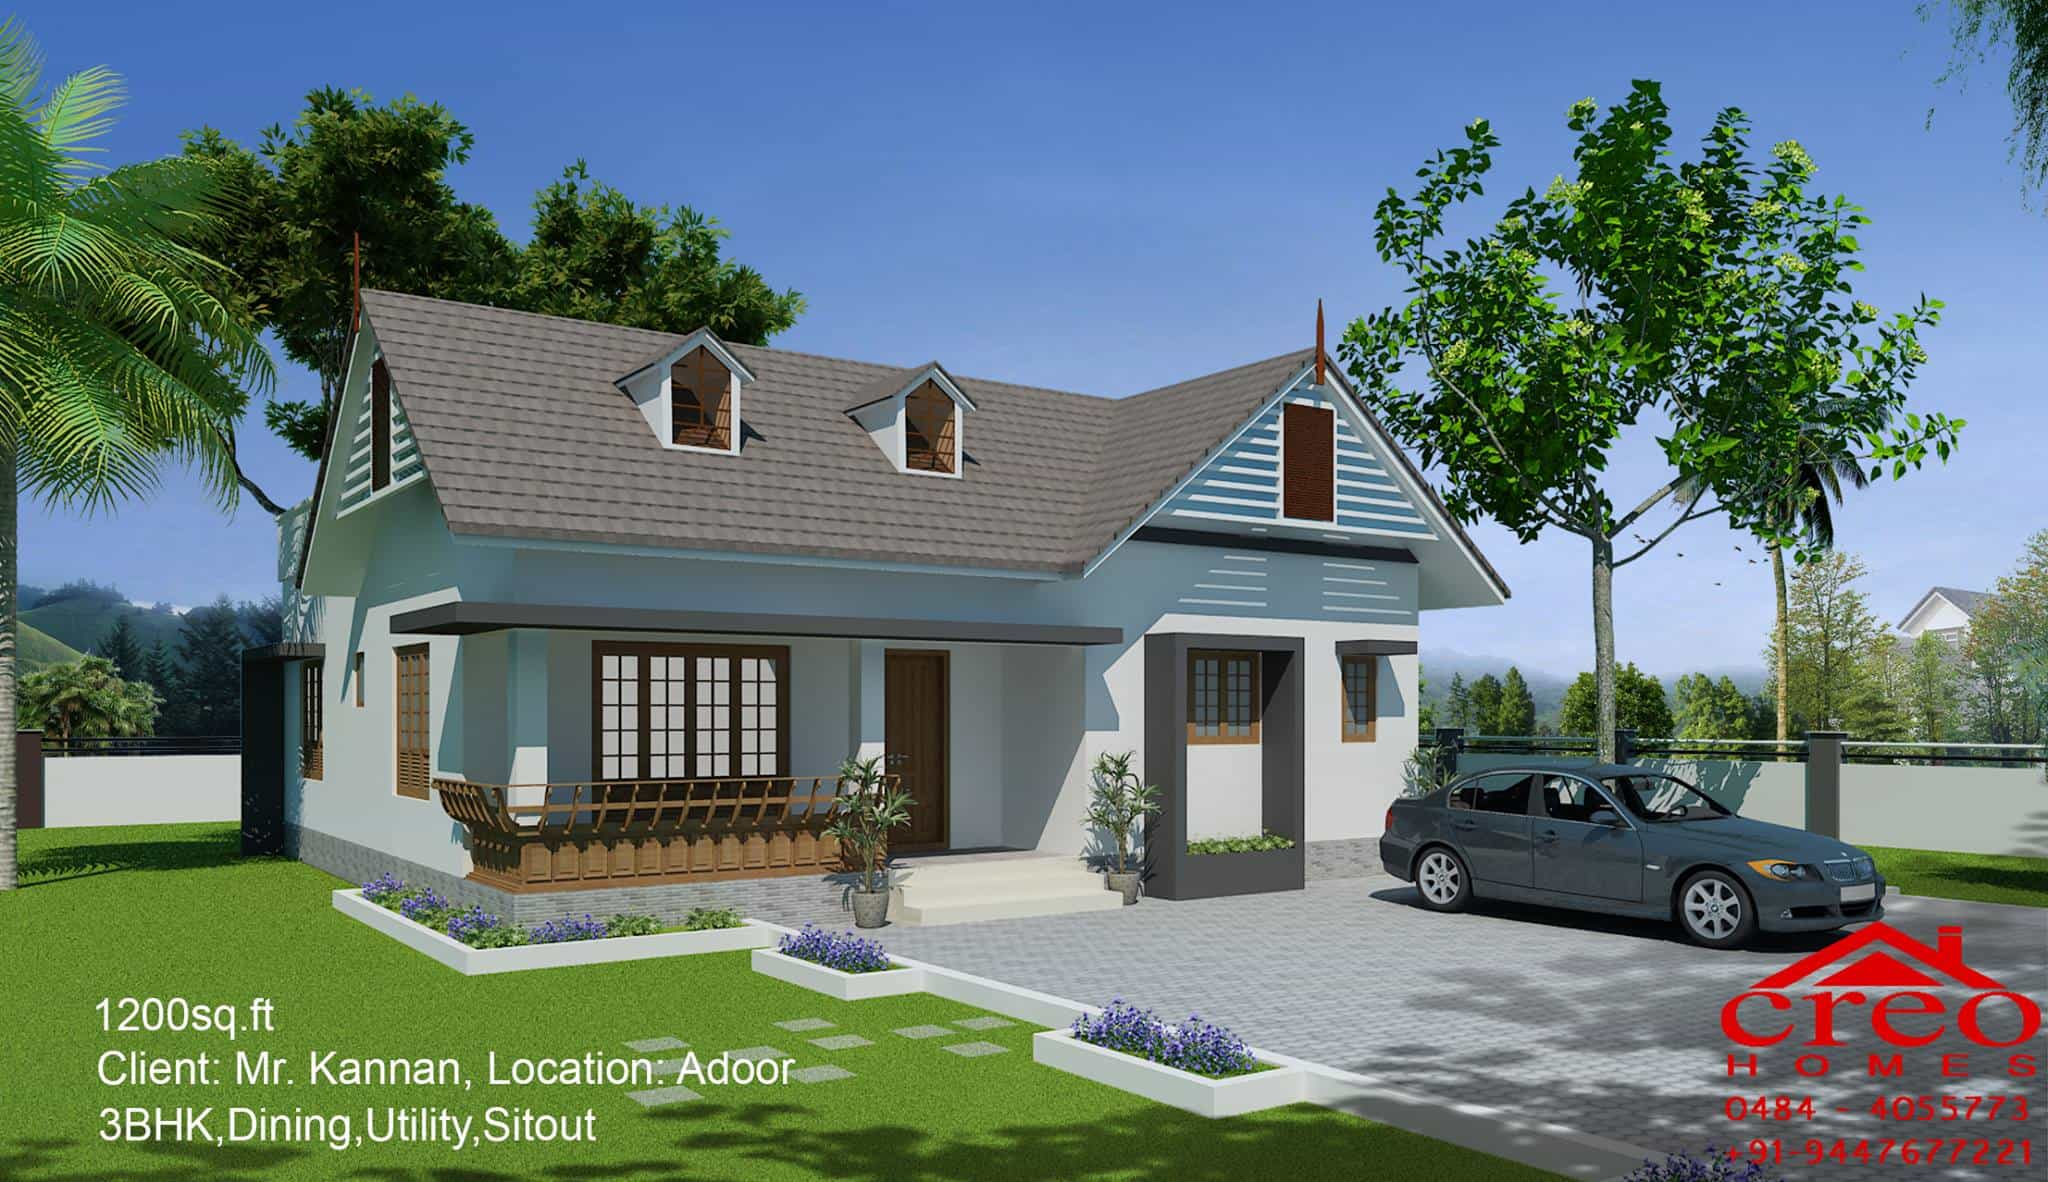 5 Lakh Home Design Part - 20: House Design In Kerala Below 15 Lakhs